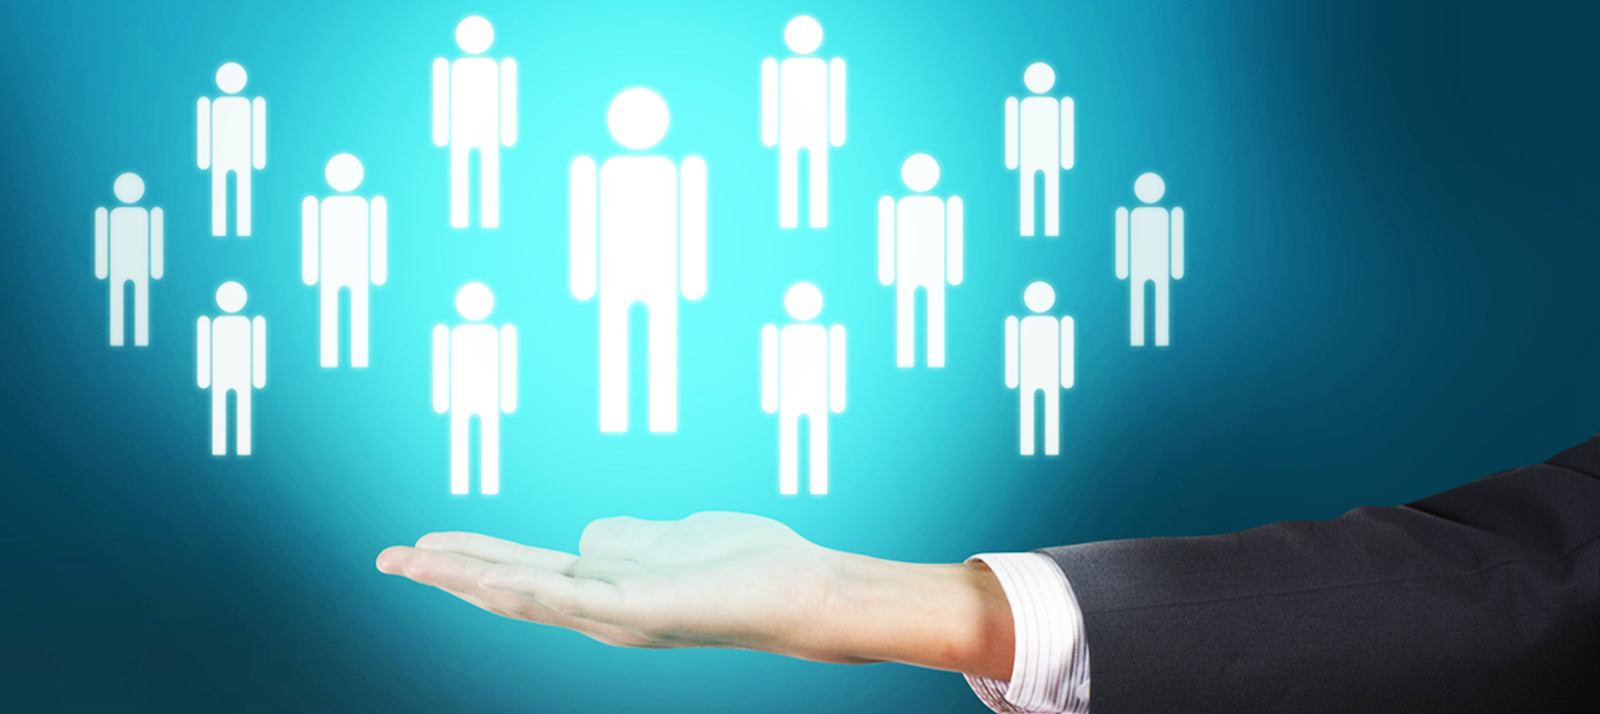 How Many Cv's Can I Anticipate From a Flat Payment Recruitment Company?